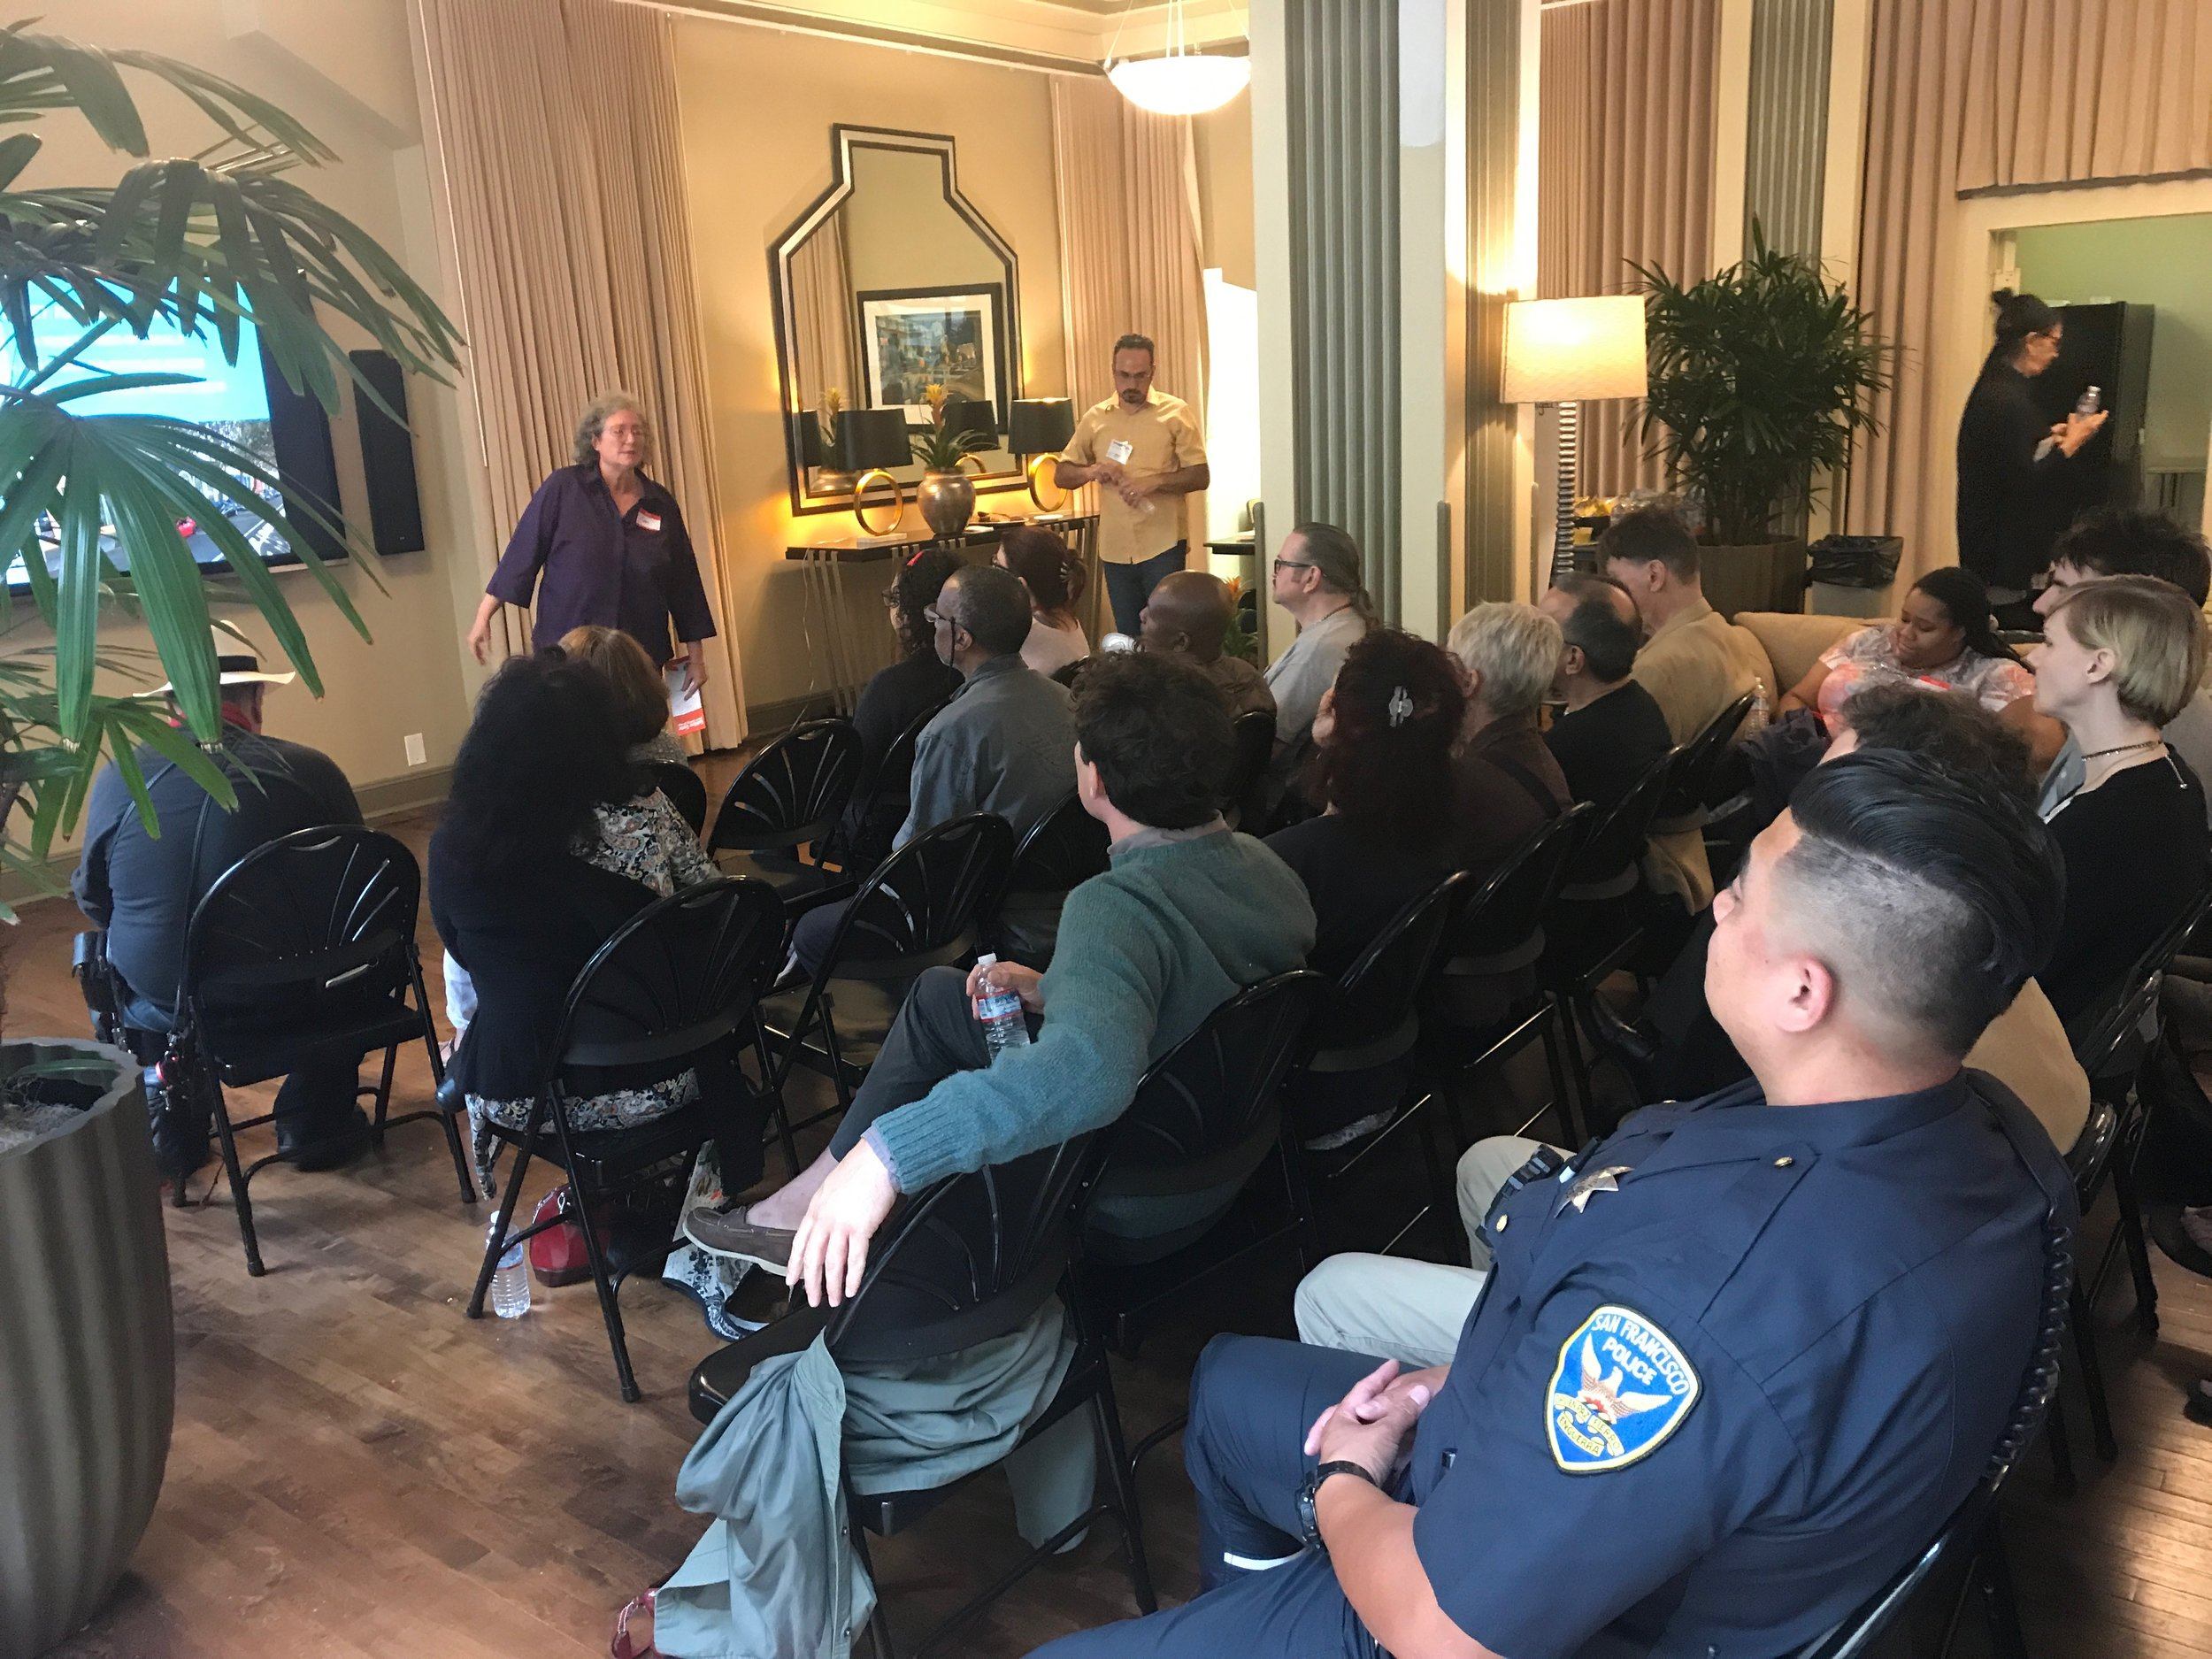 Kim Jackson of the Local 2 Hotel Workers Union shares her experience as a member of the Golden Gate Block Safety Group.